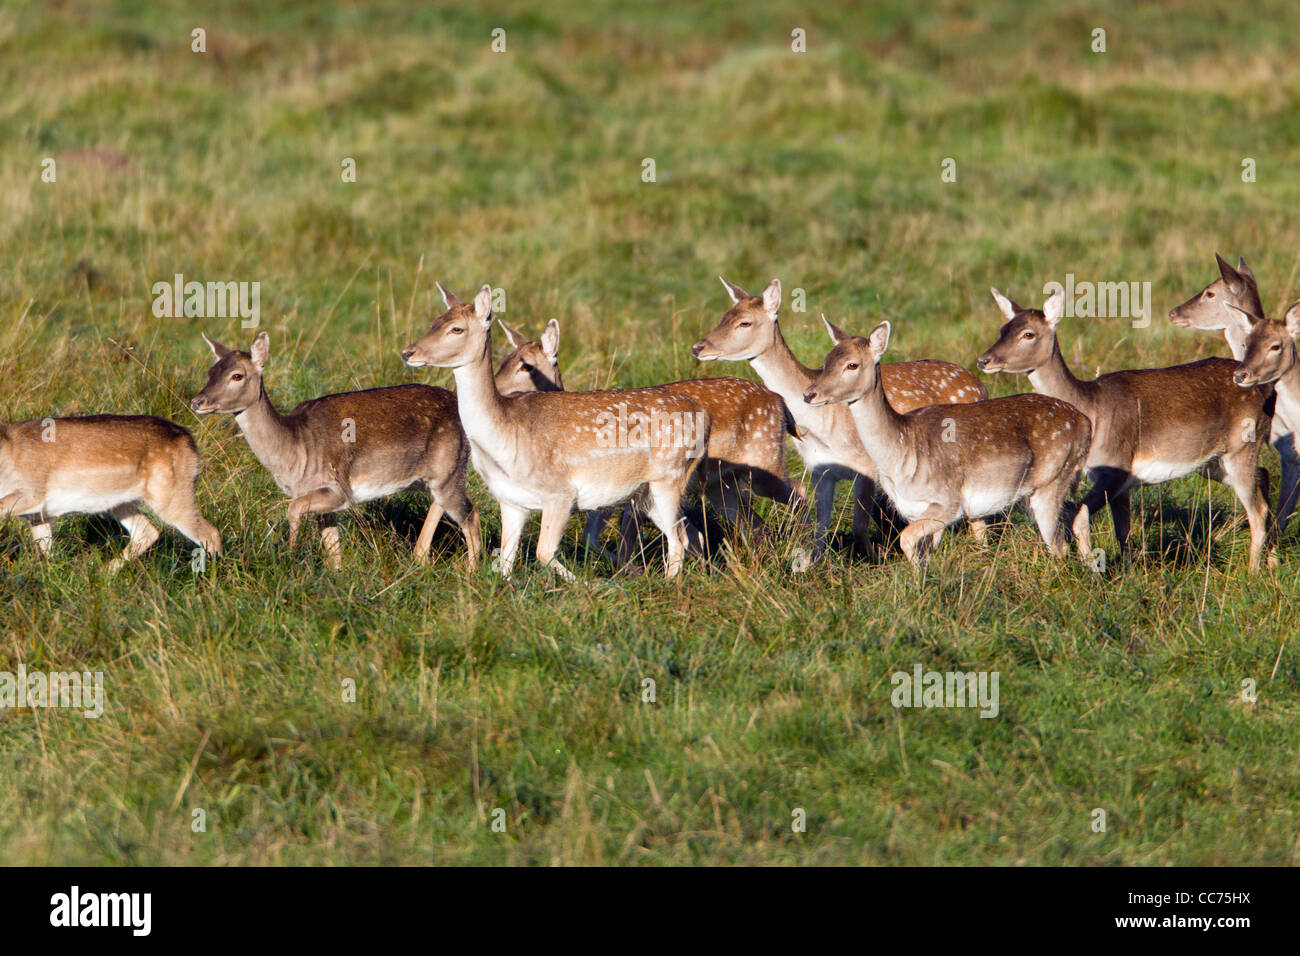 Fallow Deer (Dama dama), Herd of Hinds, Sjaelland, Denmark Stock Photo